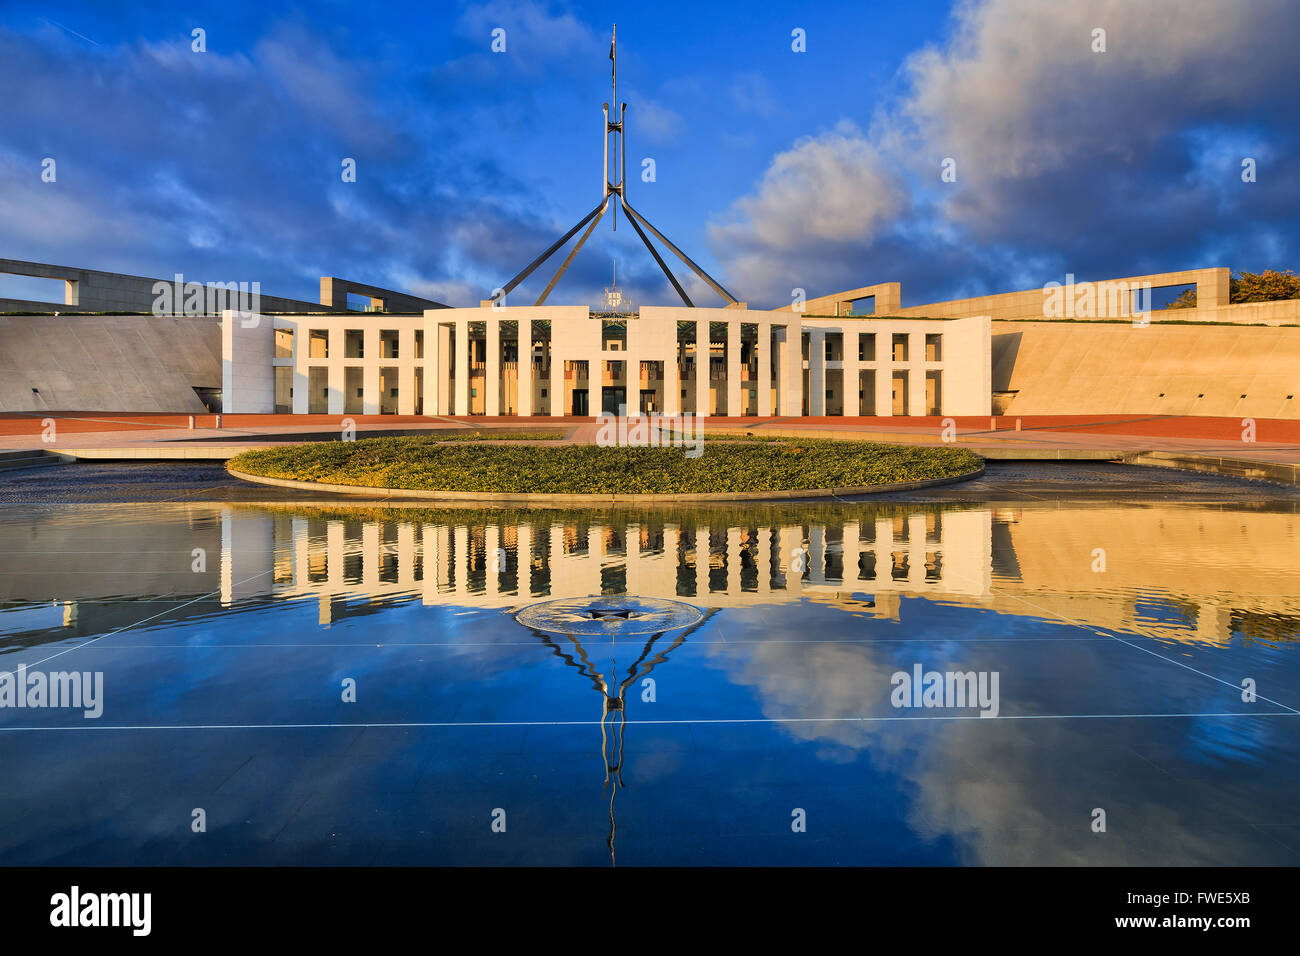 Facade of new Parliament house of Australia in Canberra with high flag on a flagpole with reflection in stil water - Stock Image